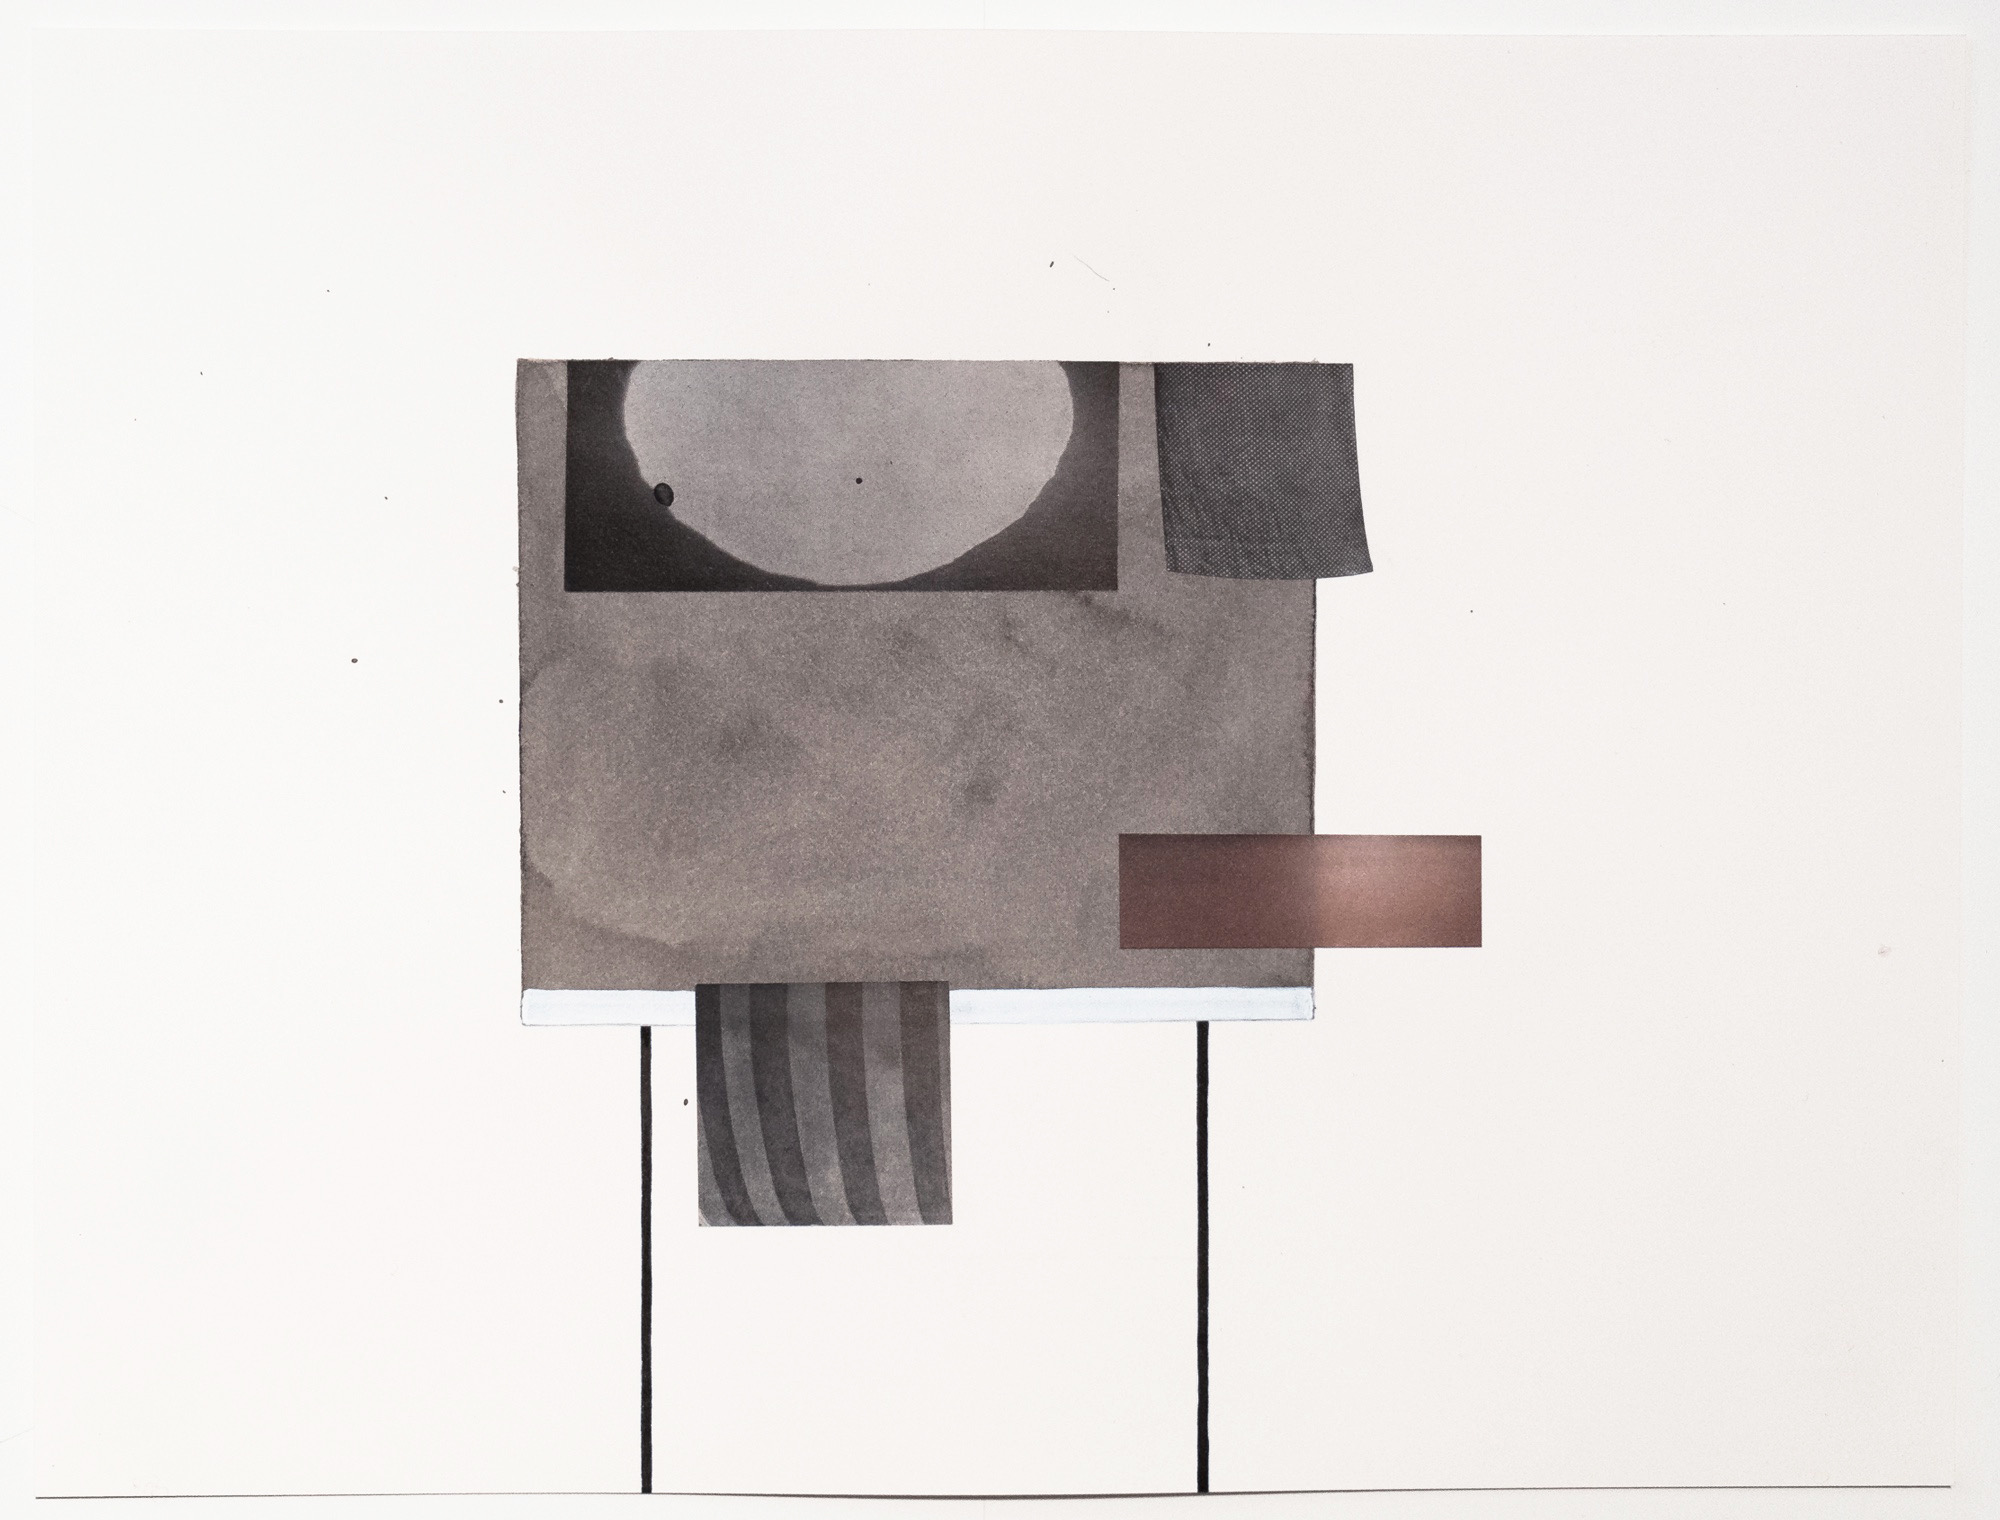 Untitled (no. 45), 2013, ink, collage on paper, 12 x 16""